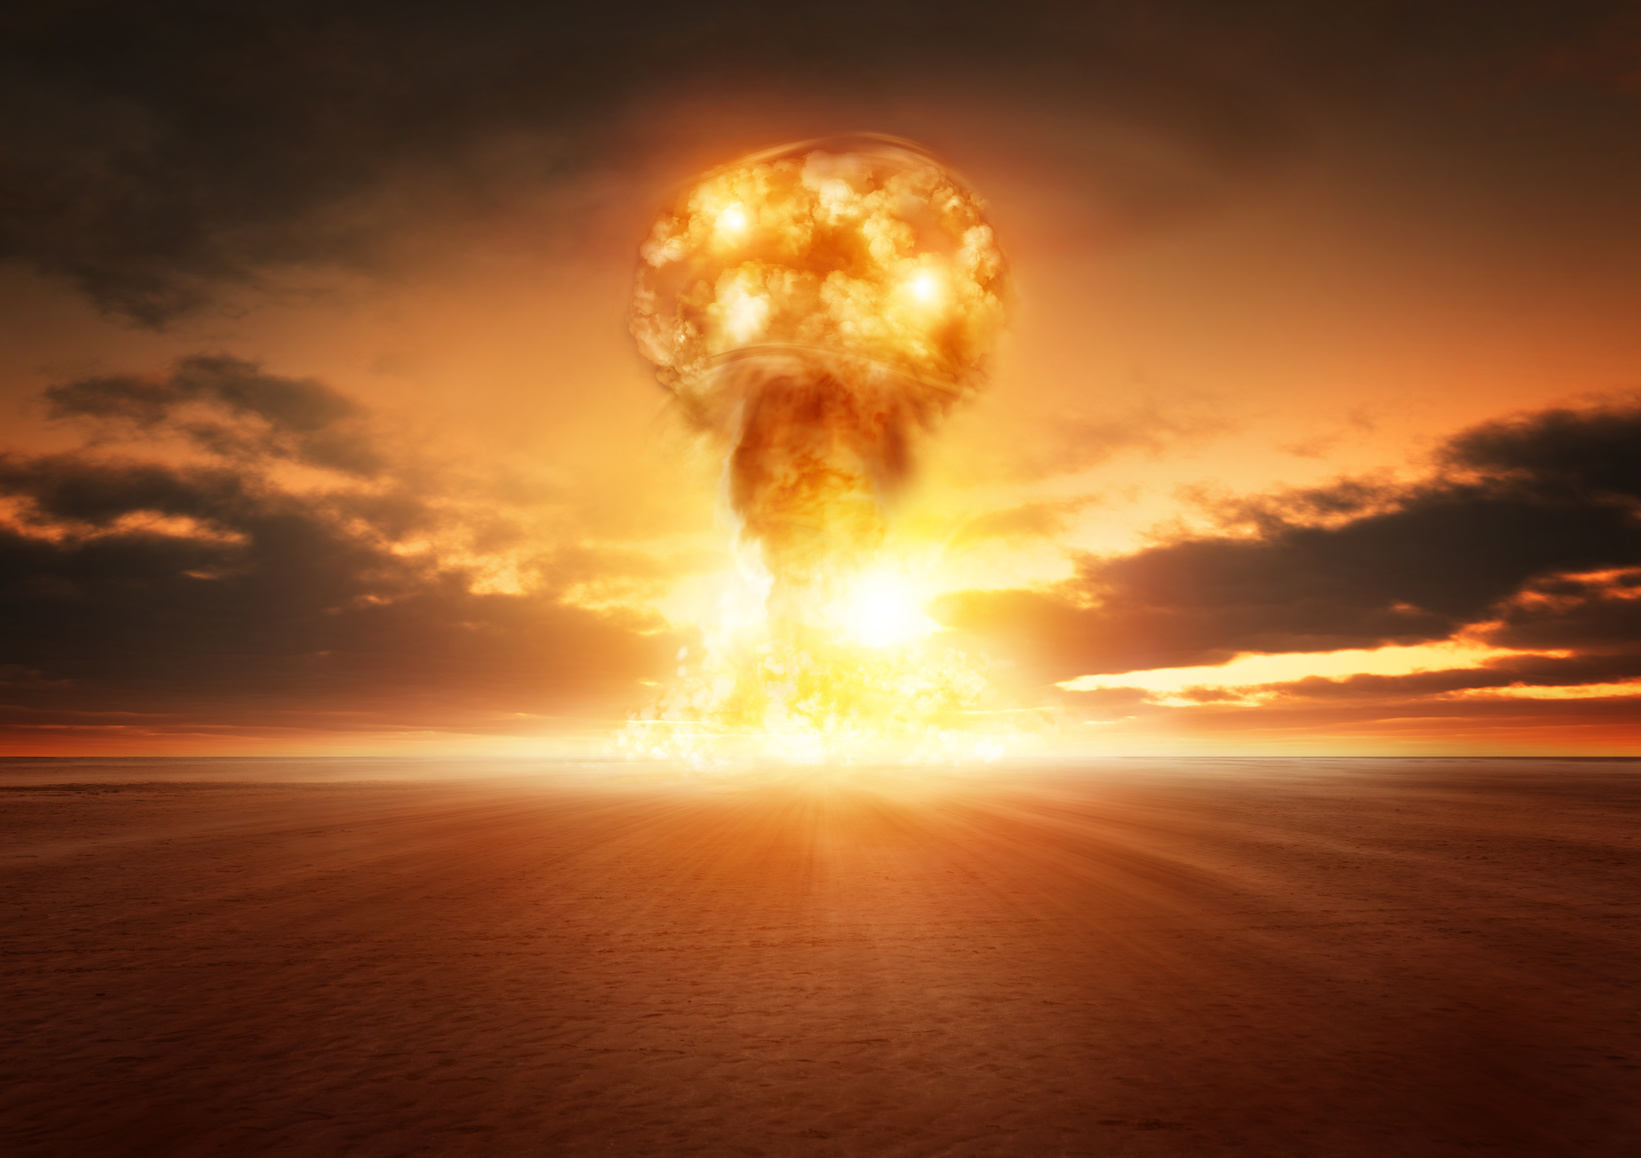 A modern nuclear bomb explosion in the desert.